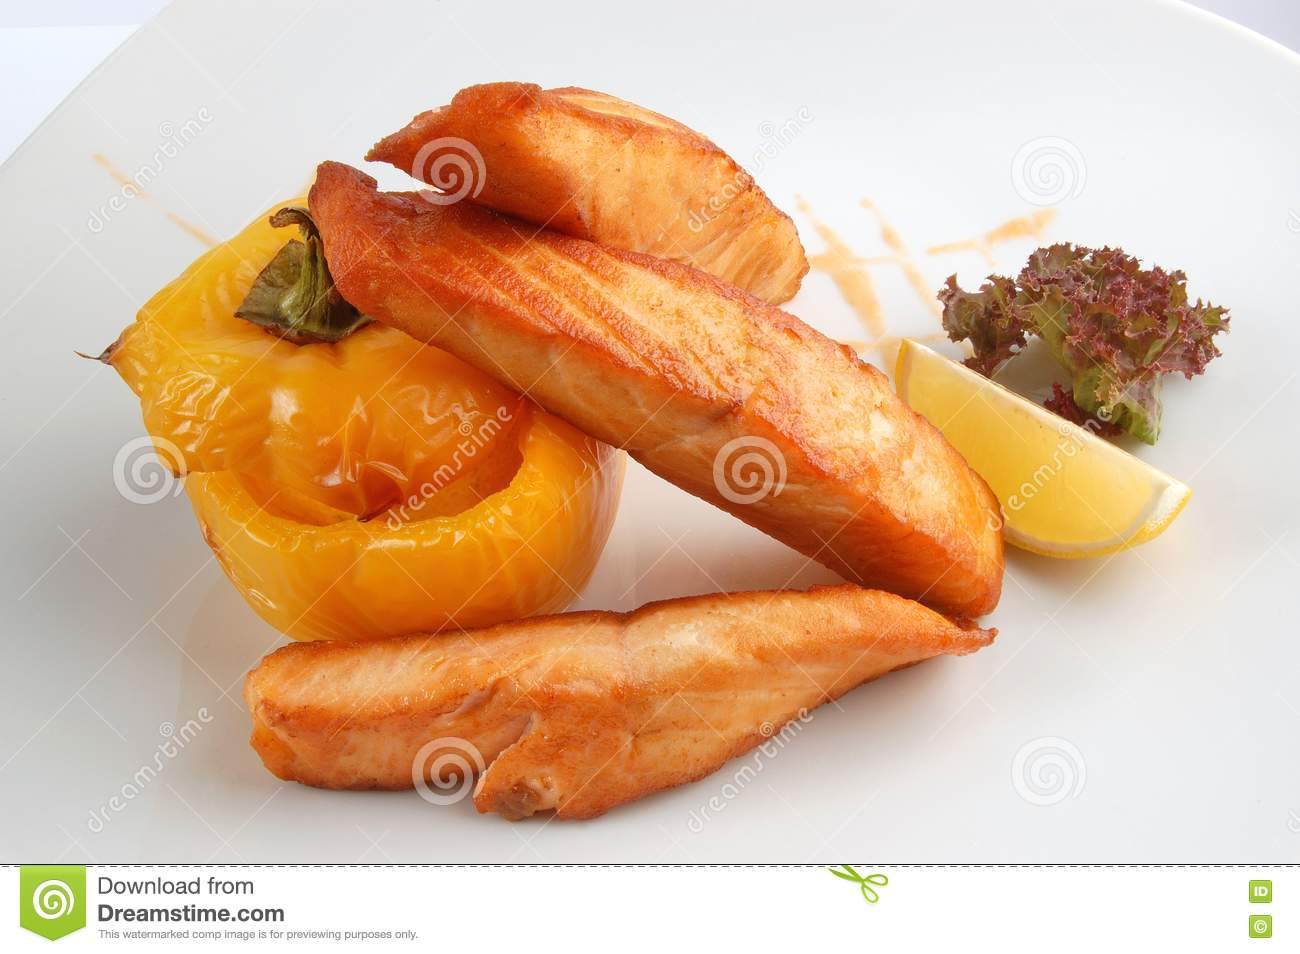 Fried fish with vegetables stock photo image 16403530 for What vegetables go with fish